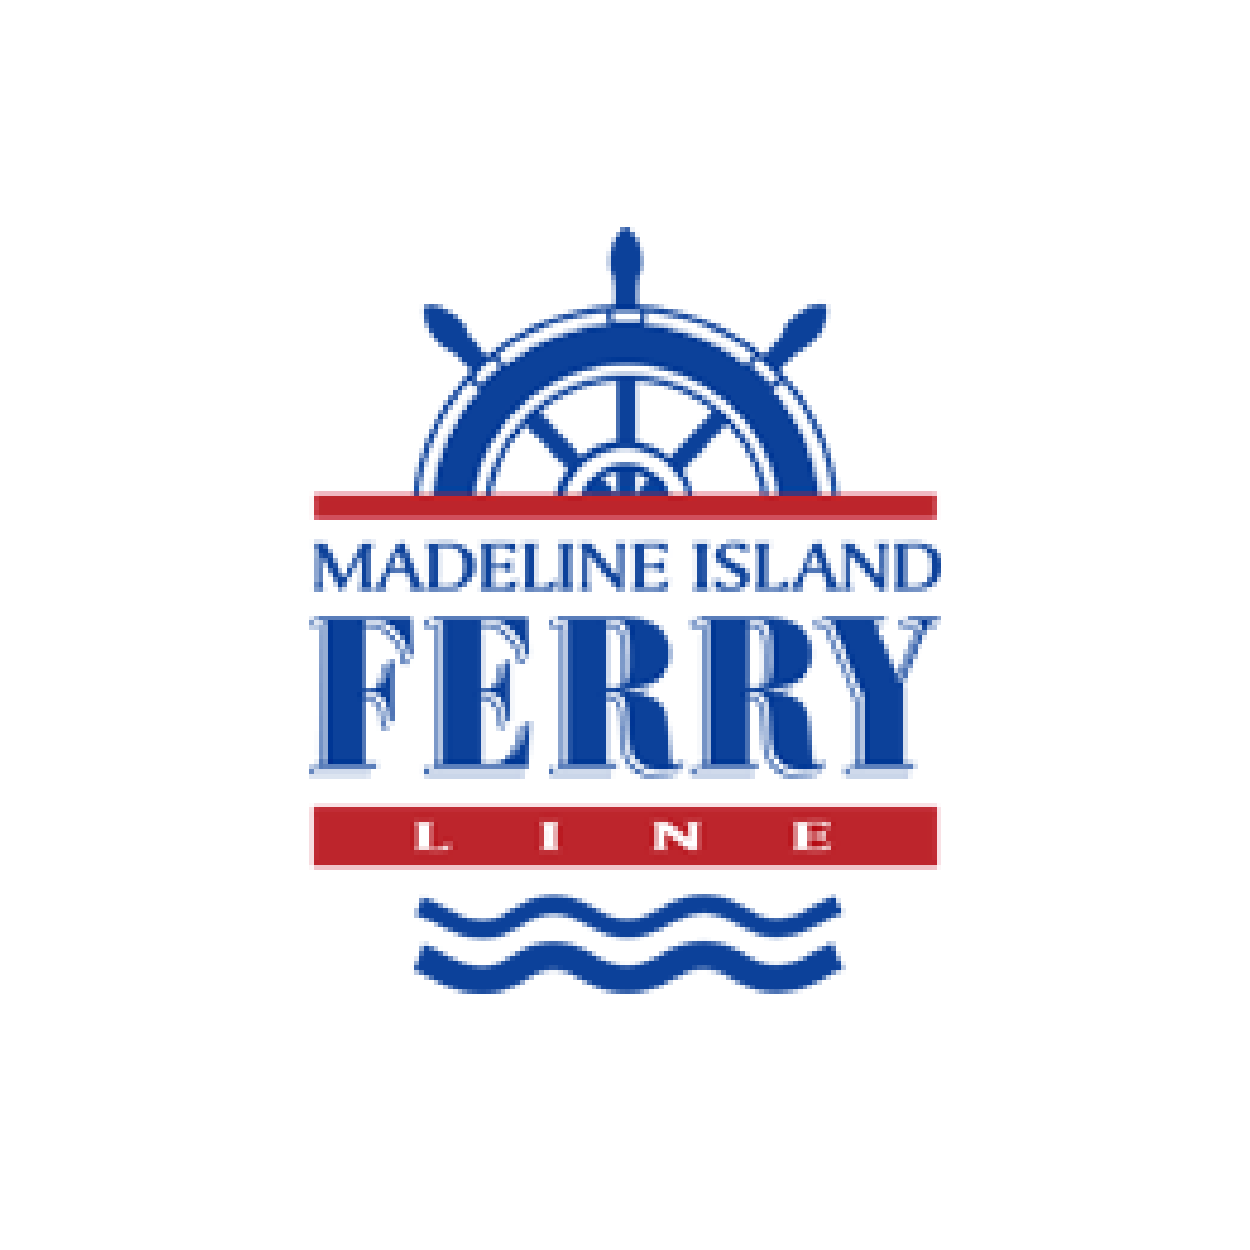 madeline-island-ferry-line-logo.png